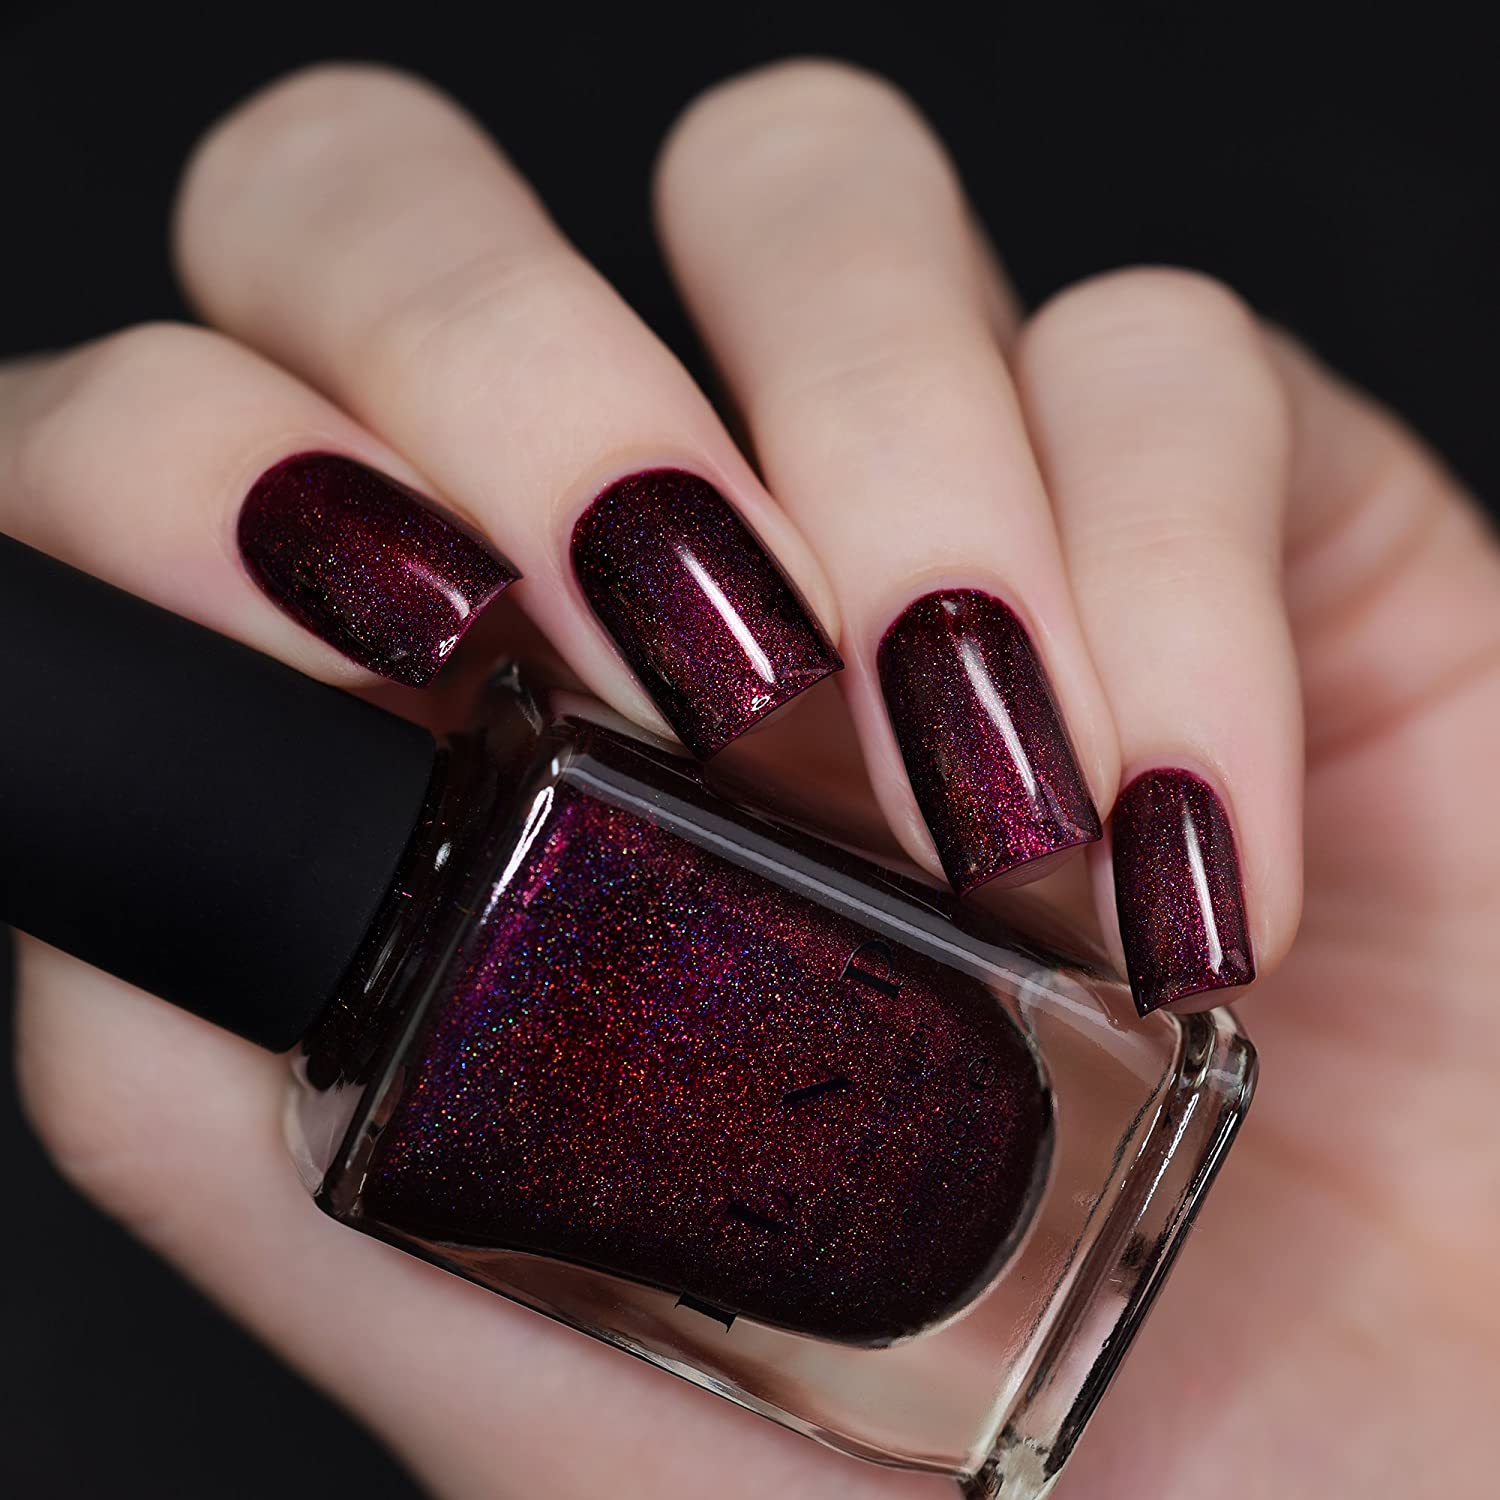 Amazon.com : ILNP Black Orchid - Deep Burgundy / Plum Vampy ...